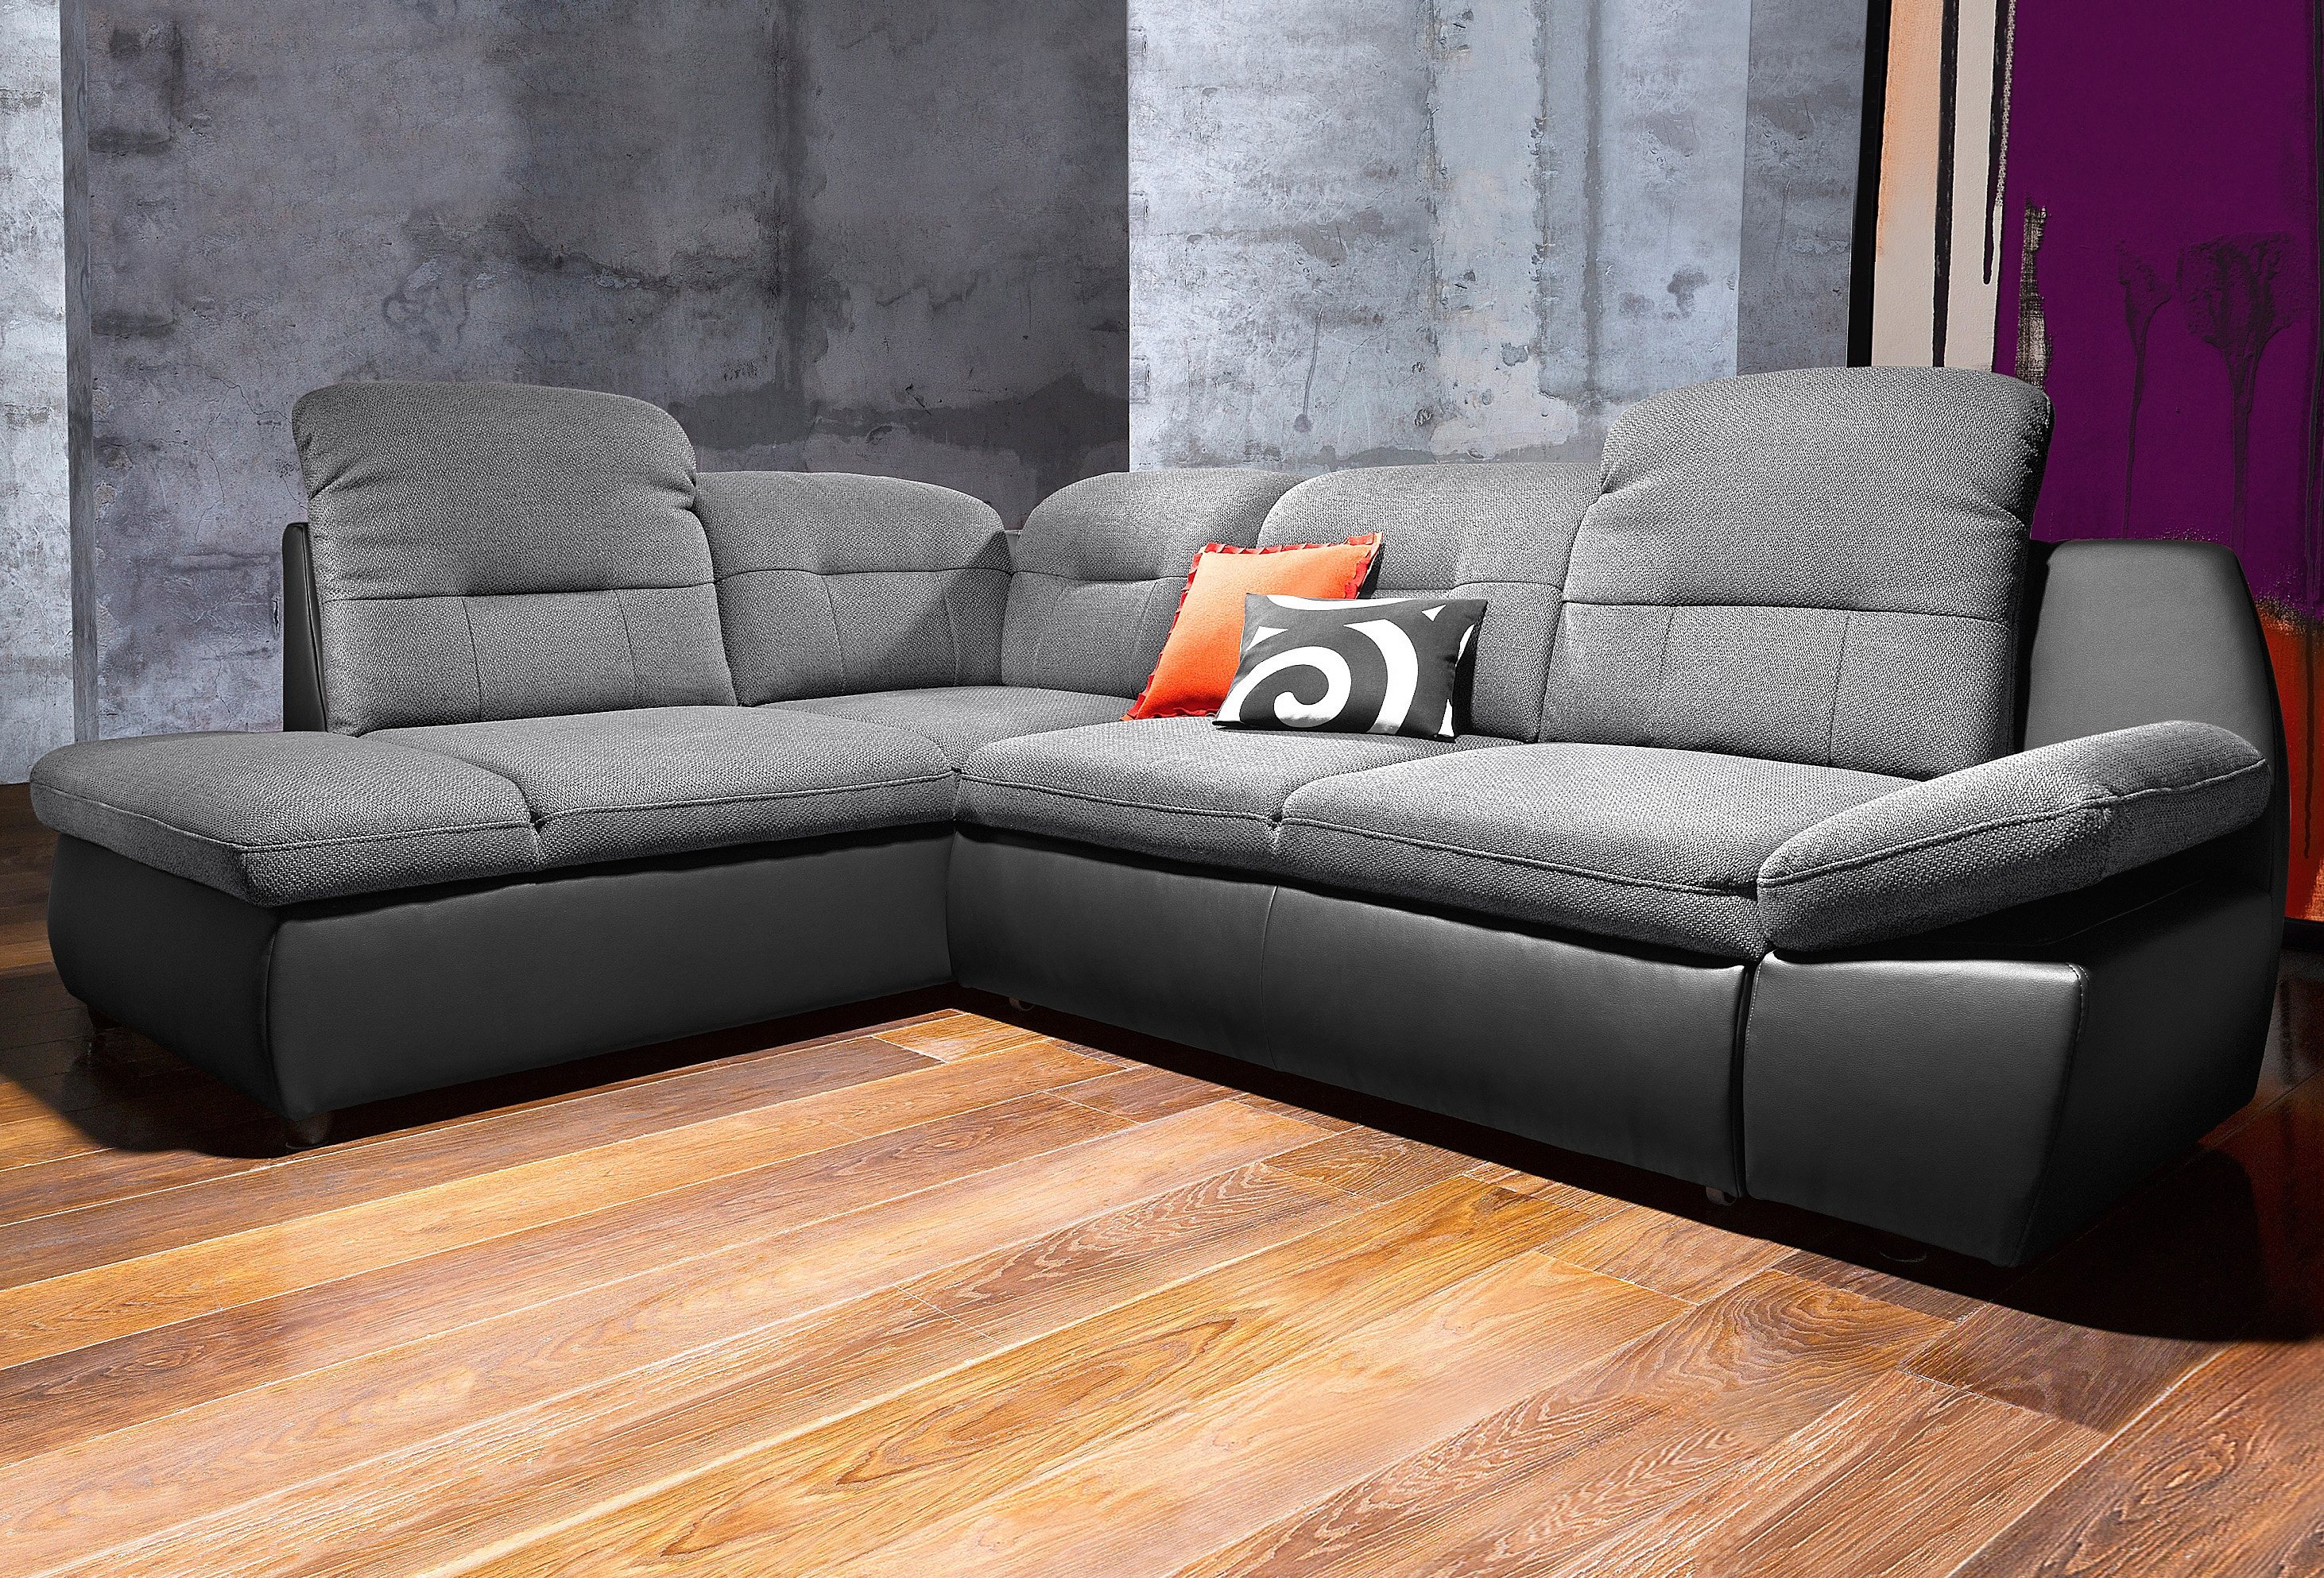 Polsterecke city sofa wahlweise mit bettfunktion schwarz for Sofa mit bettfunktion